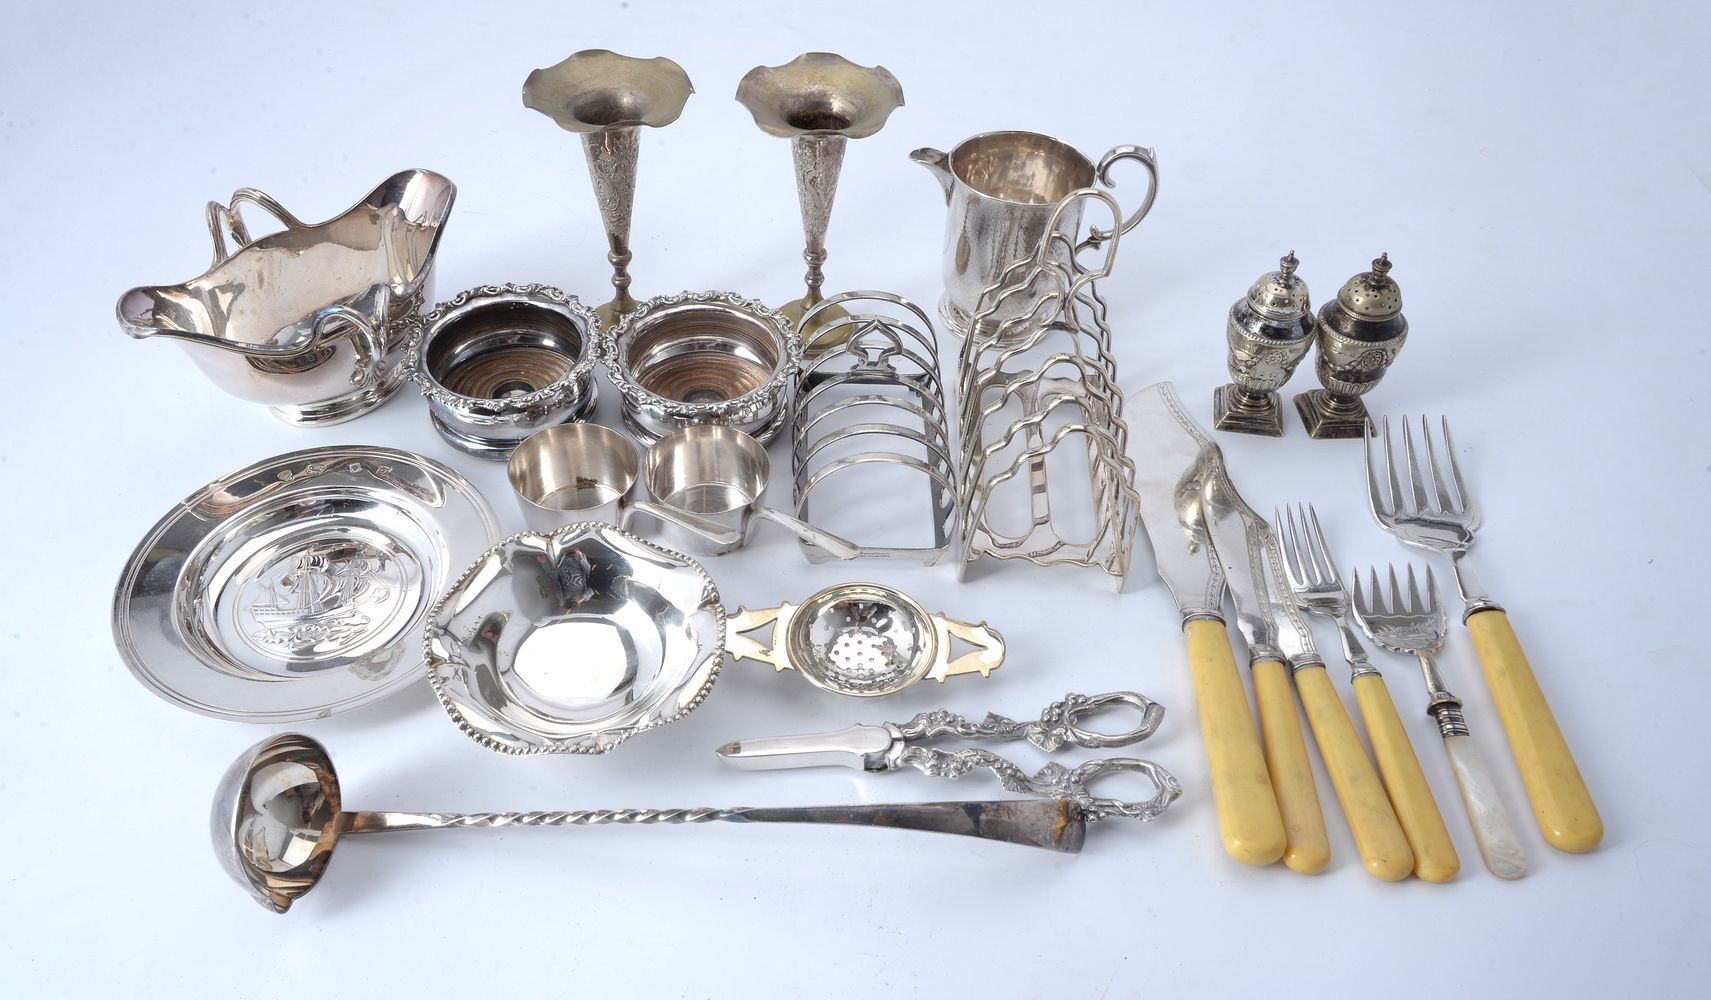 Lot 674 - Four silver items and various plated wares